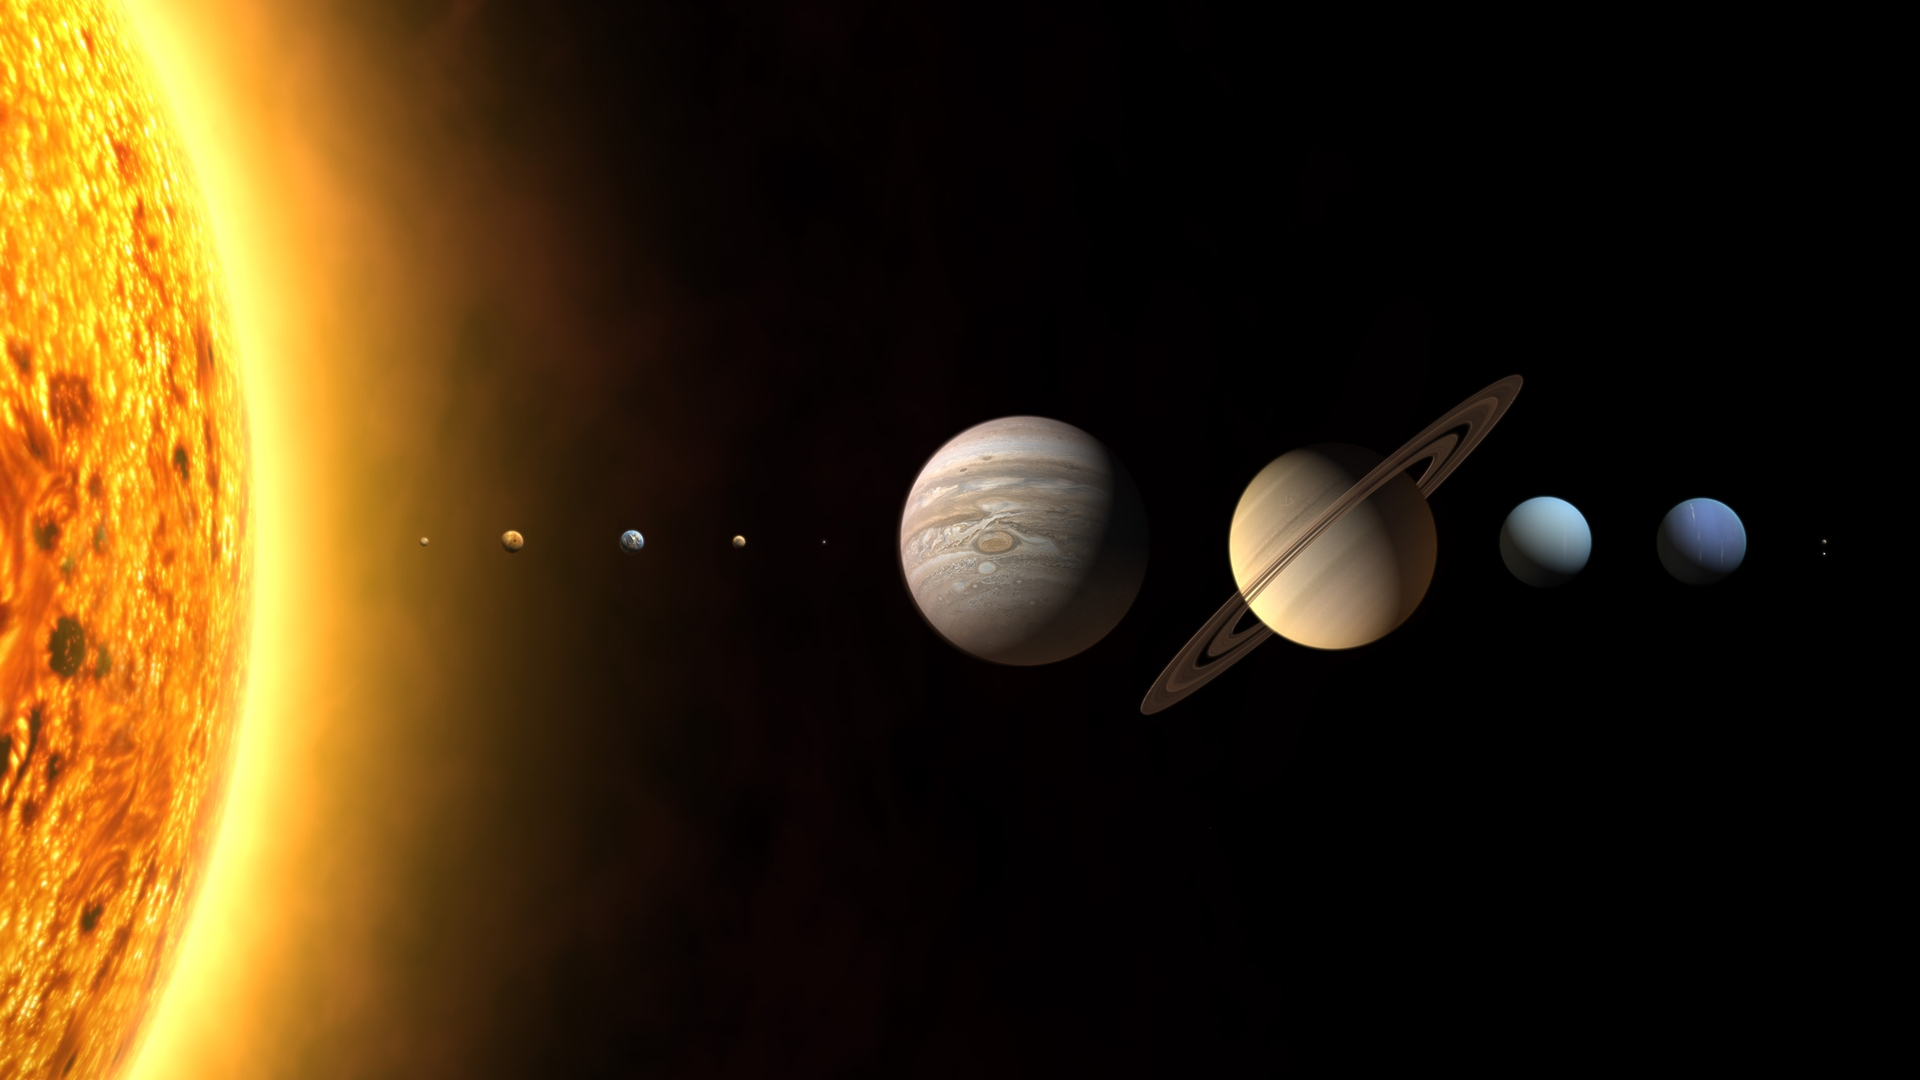 This is a Solar System wallpaper. This Solar System background can be used